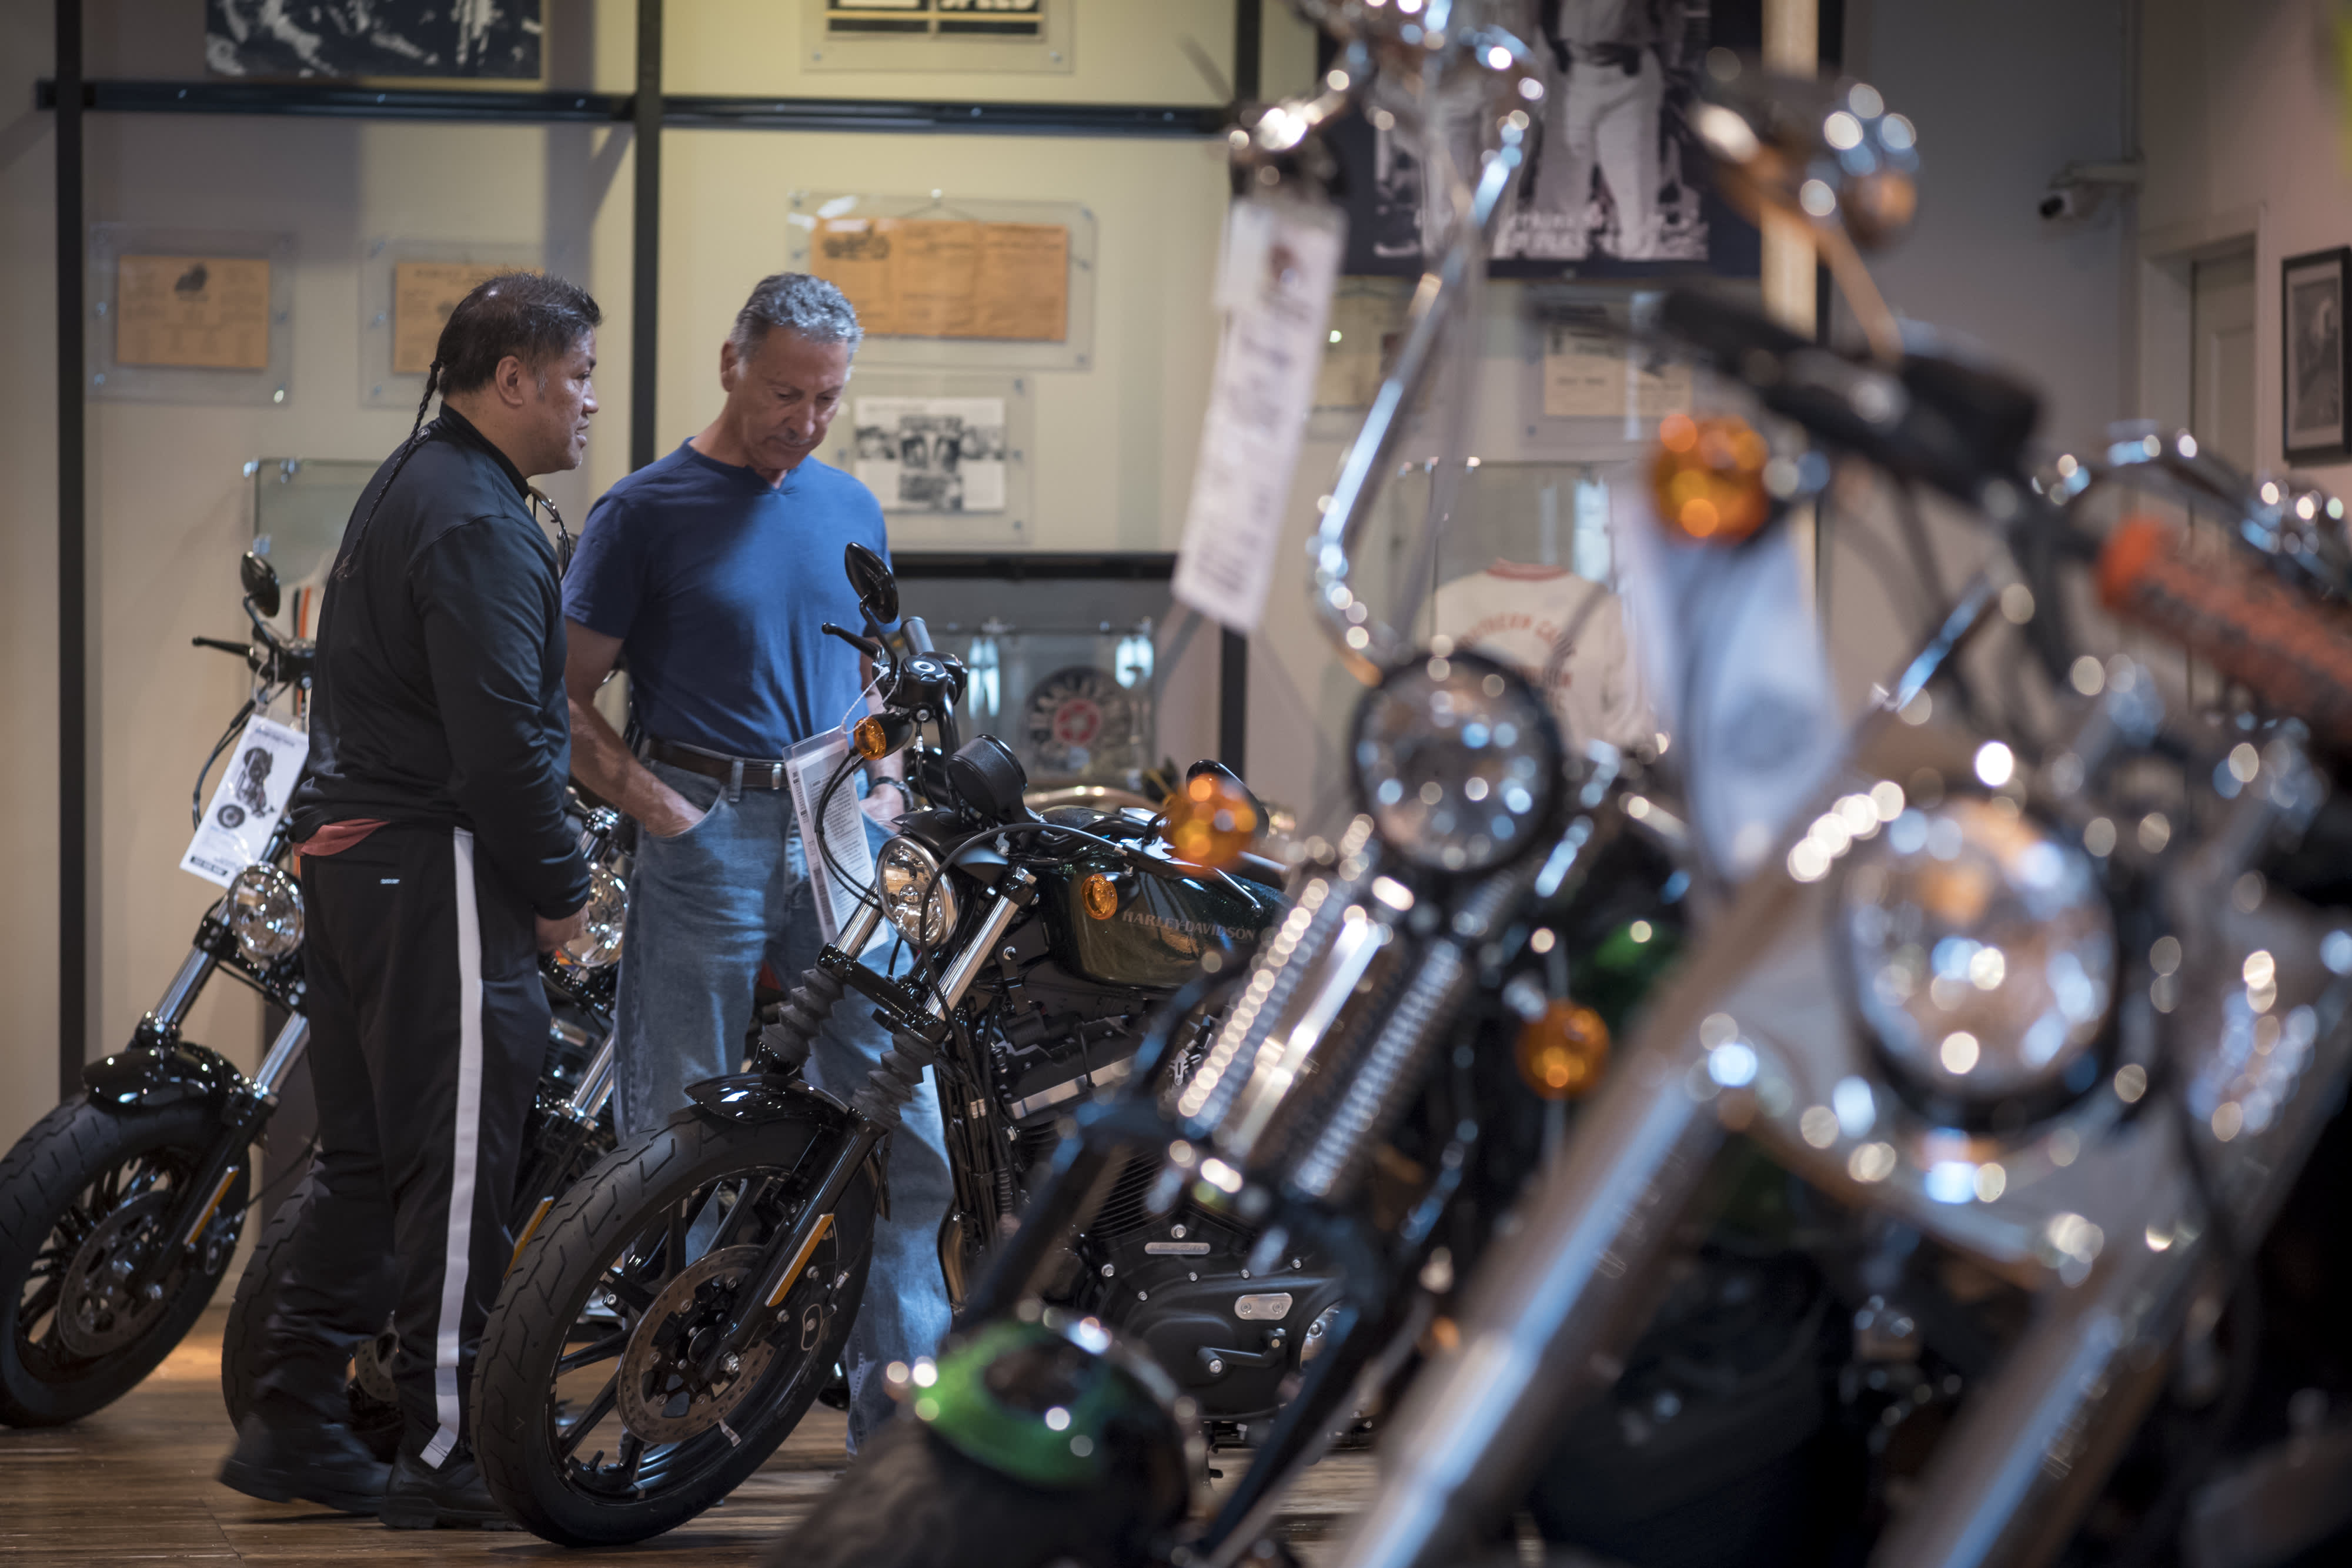 Prices For Used Harley Bikes Are Near Historic Lows But Not For Long